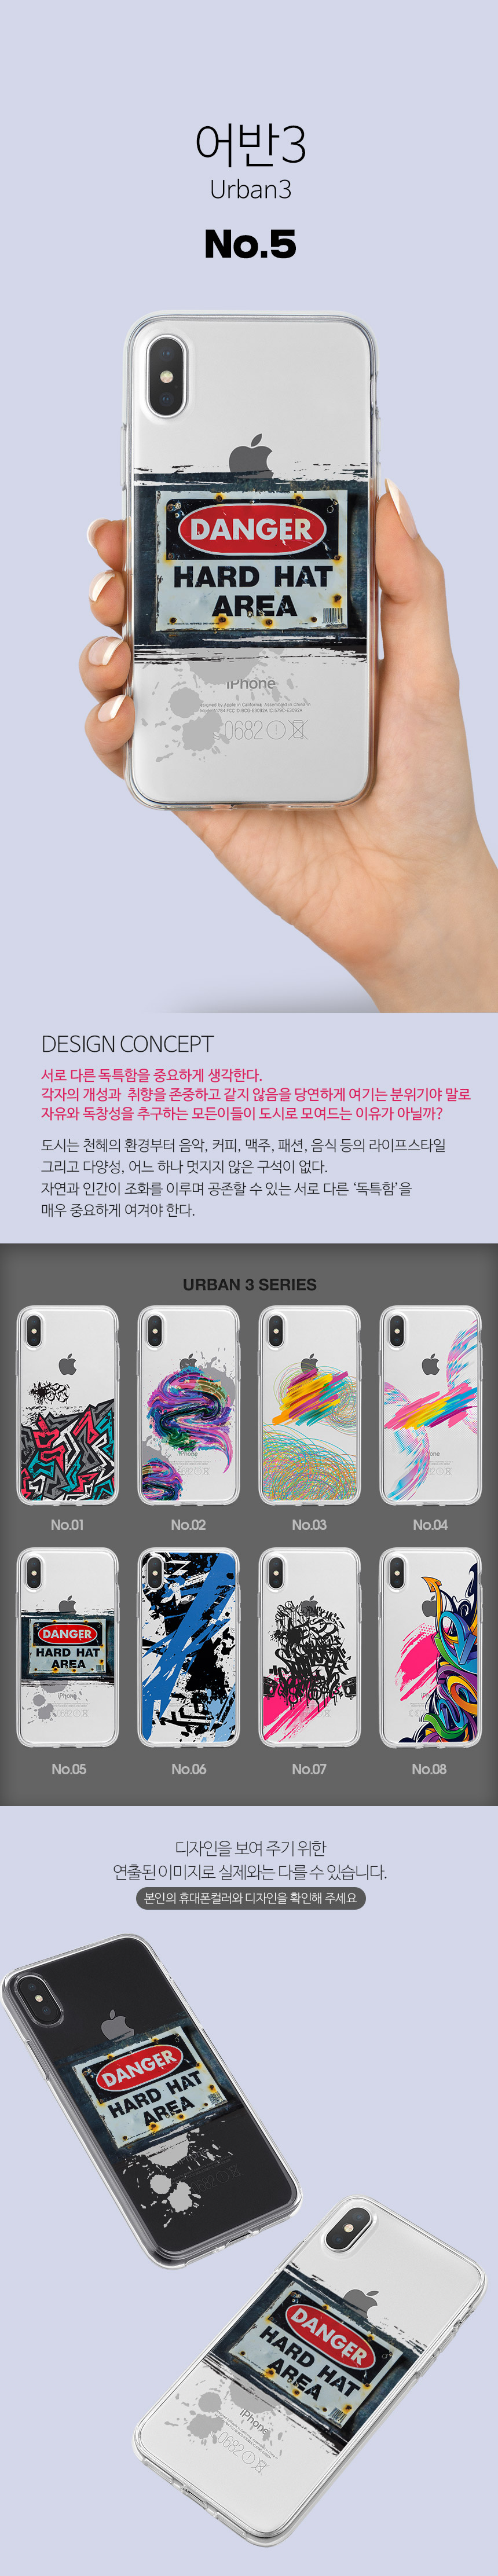 기키(GEEKY) [투명] phone case Urban3 No.5